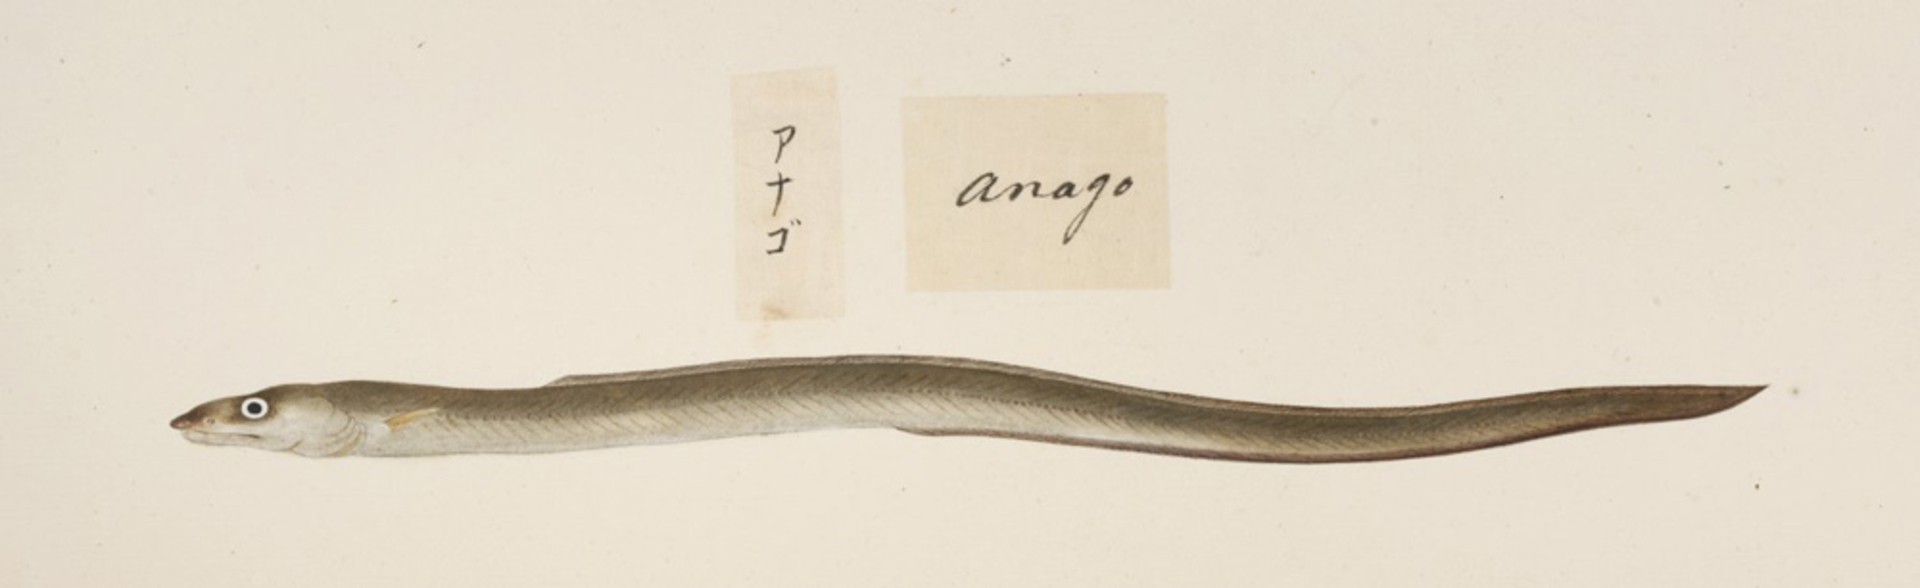 RMNH.ART.471 | Anago or conger